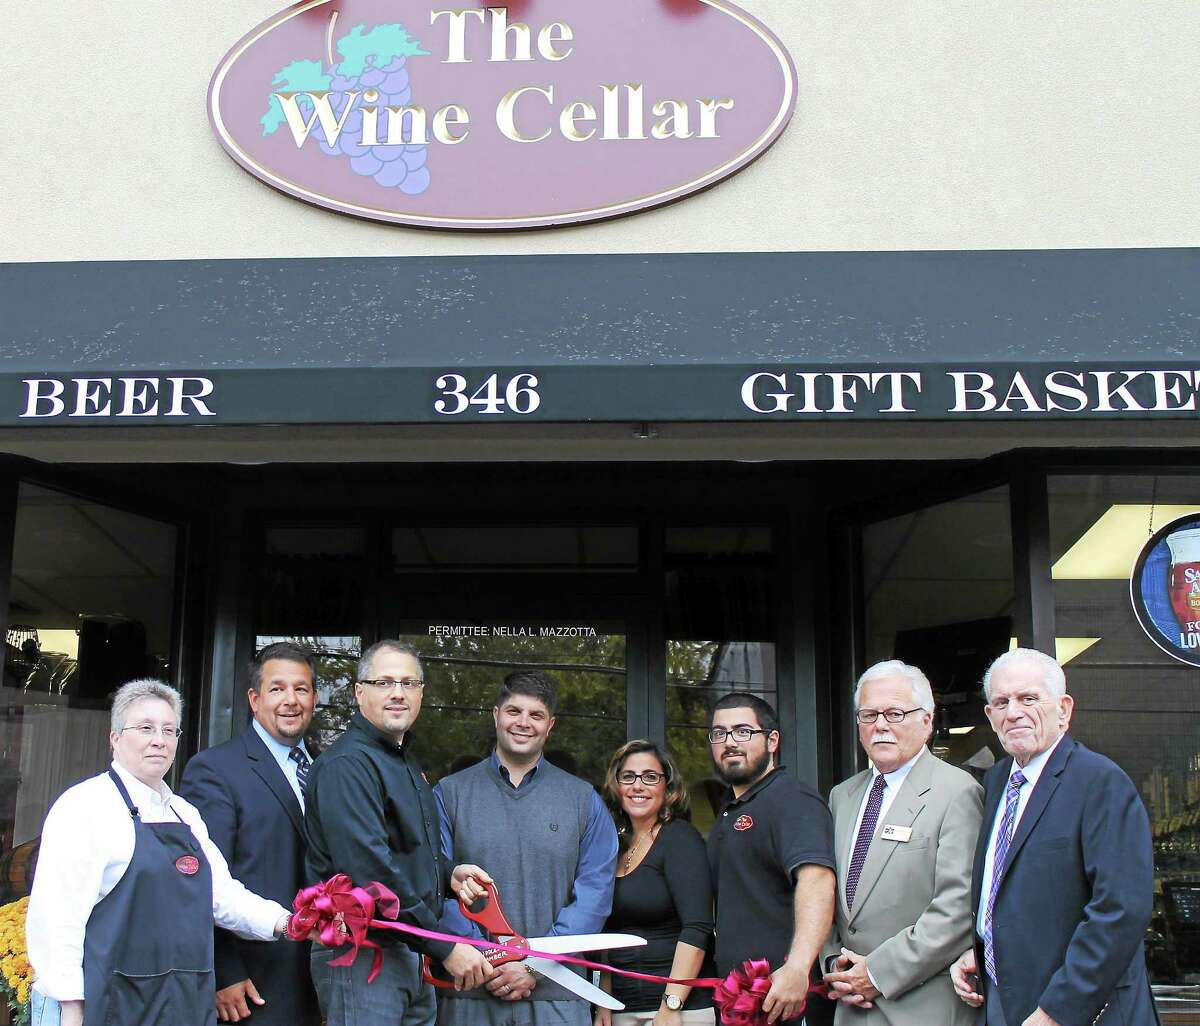 From left are: Richelle Carlone of The Wine Cellar, Middlesex County Chamber of Commerce Chairman Rich Carella, Mario Mazzotta of The Wine Cellar, Mayor Dan Drew, Nella Mazzotta of The Wine Cellar, Gino Mazzotta of The Wine Cellar, South Middletown Division Chairman Paul Dodge and Chamber President Larry McHugh.